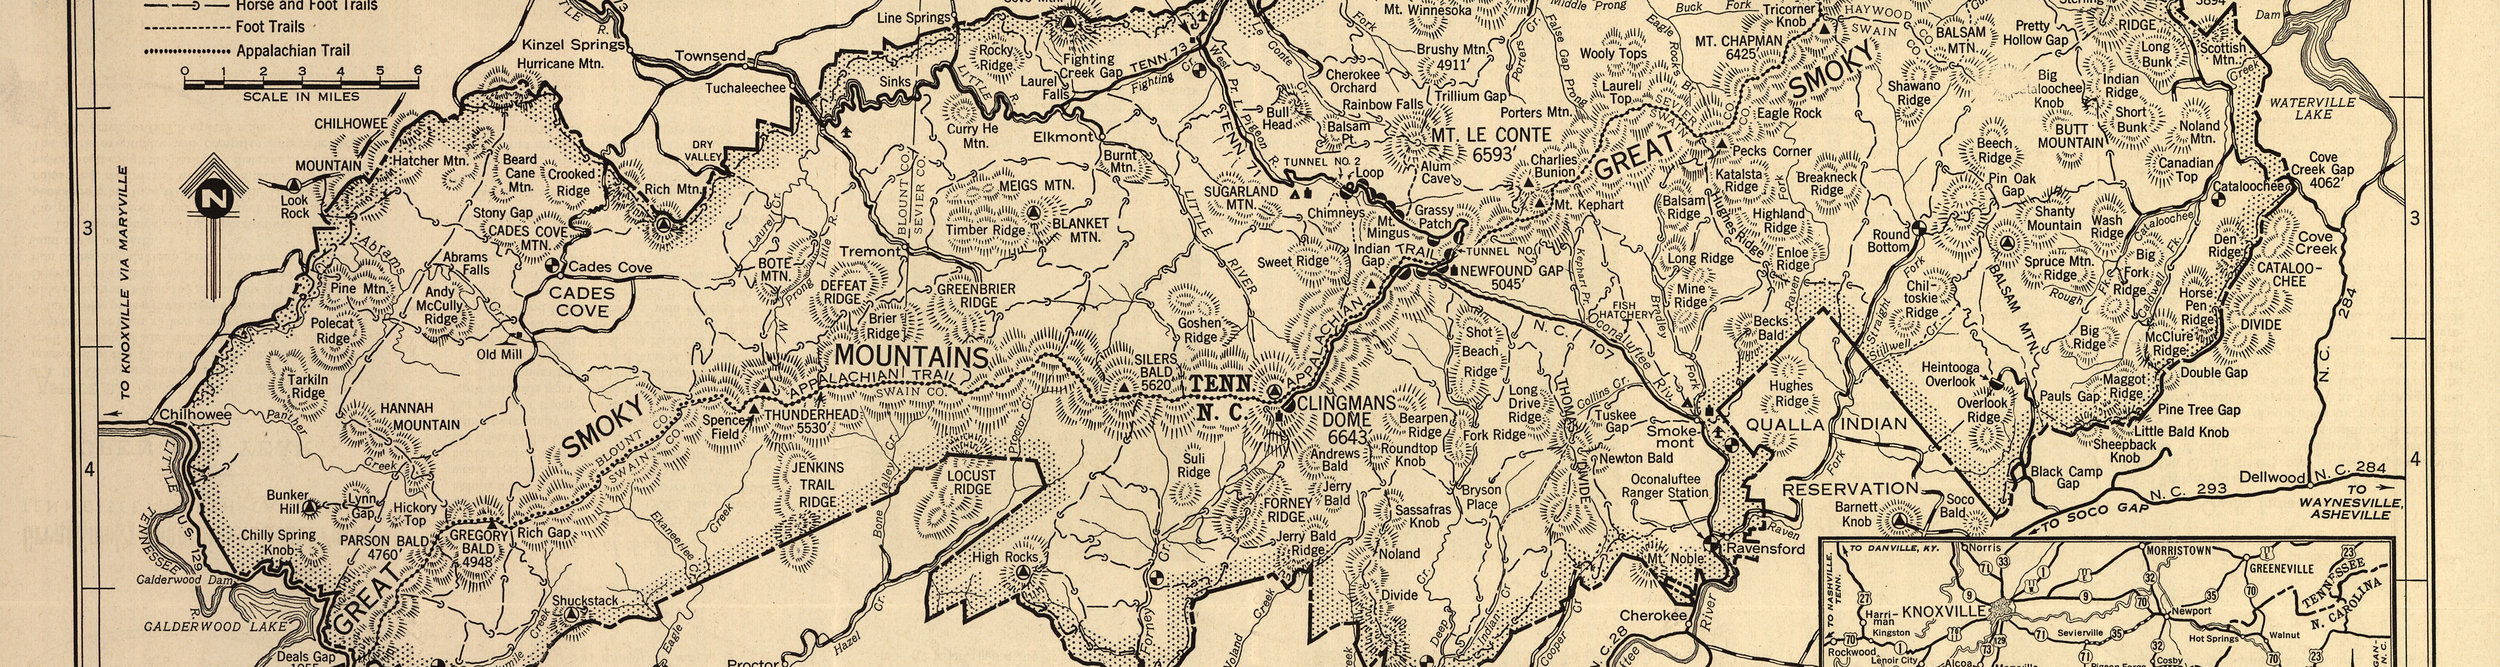 Great Smoky Mountains National Park Map 1941